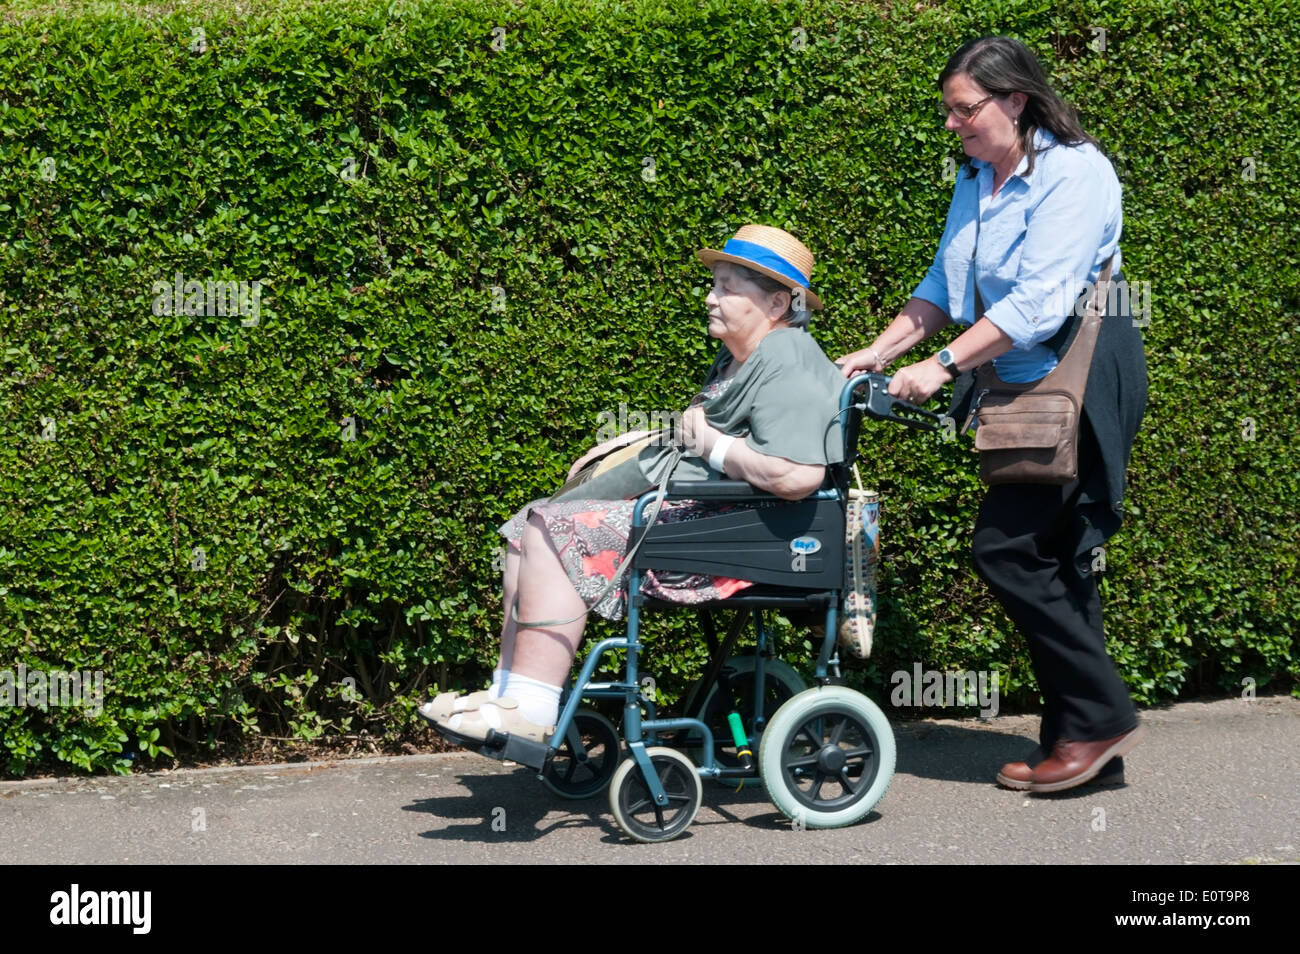 An elderly lady wearing a sun hat is pushed along the pavement in a wheelchair by her carer on a sunny day. - Stock Image